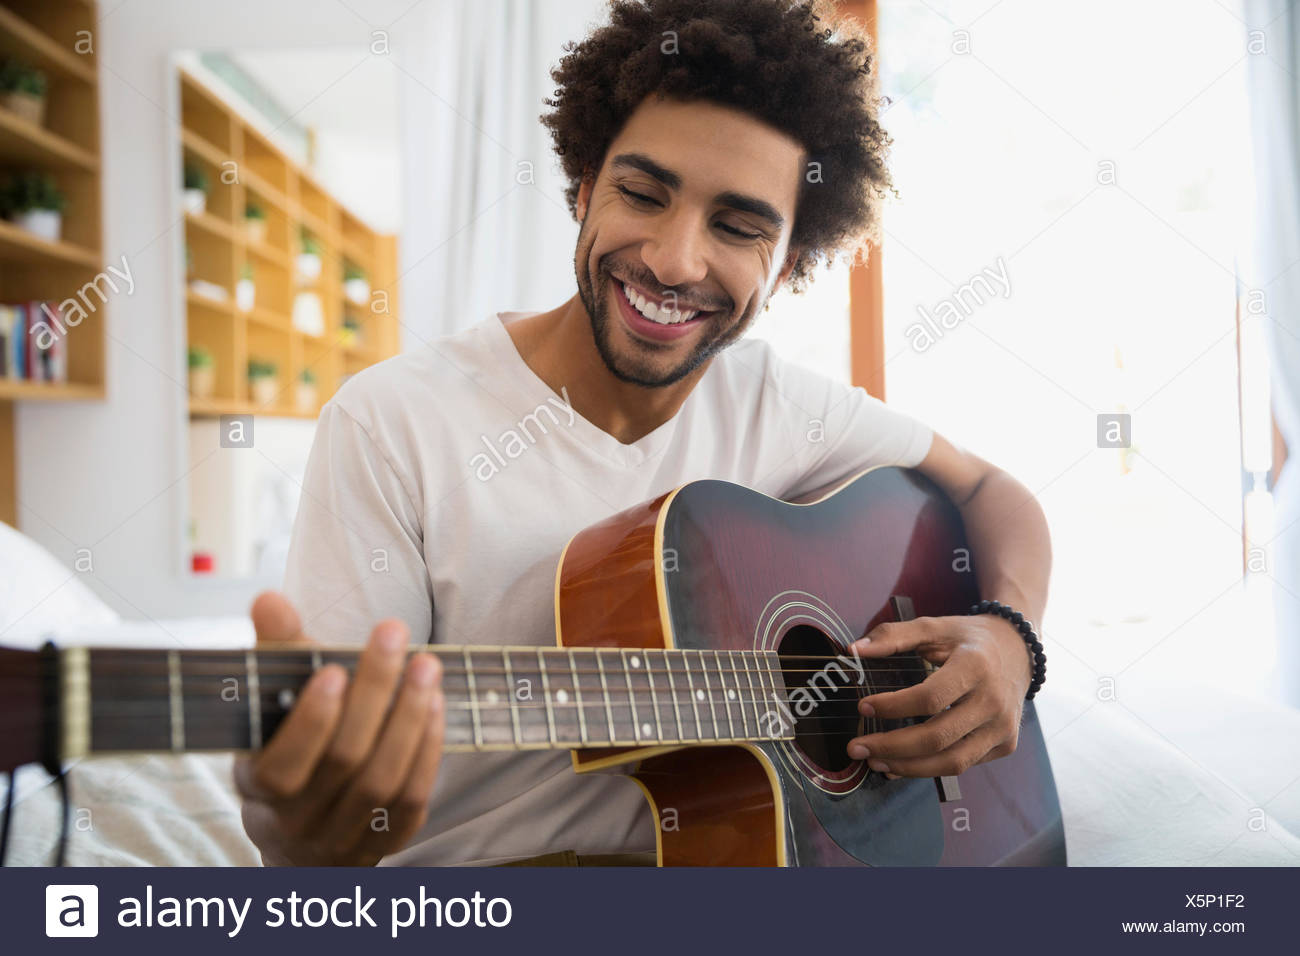 Smiling man playing guitar in bedroom - Stock Photo